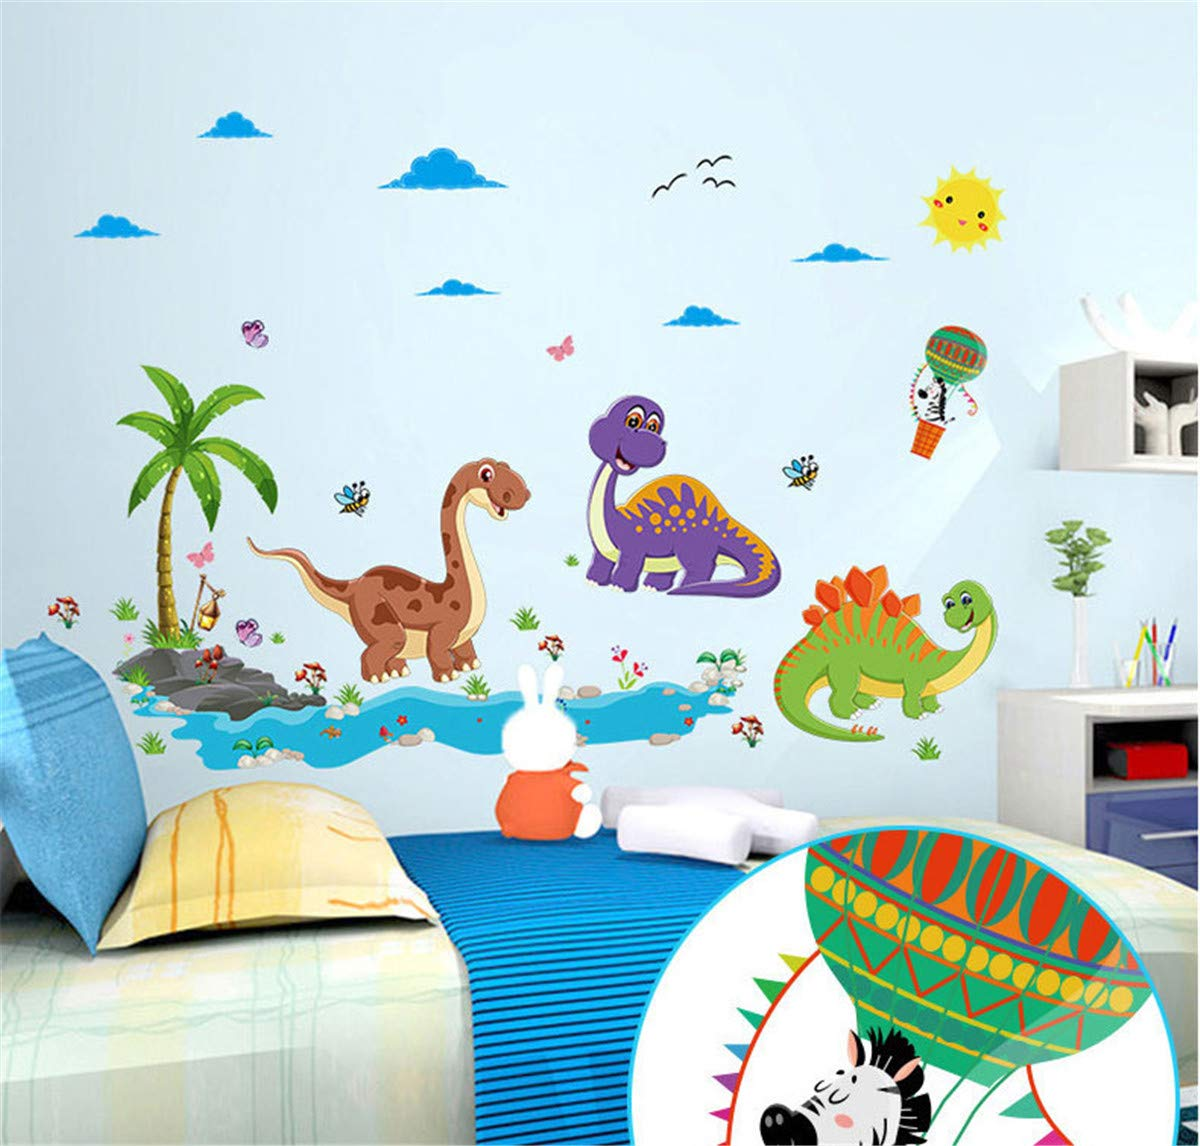 CT COUTUDI Peel and Stick Dinosaur Wall Decals Removable Wall Stickers for Kids Nursery Bedroom Living Room